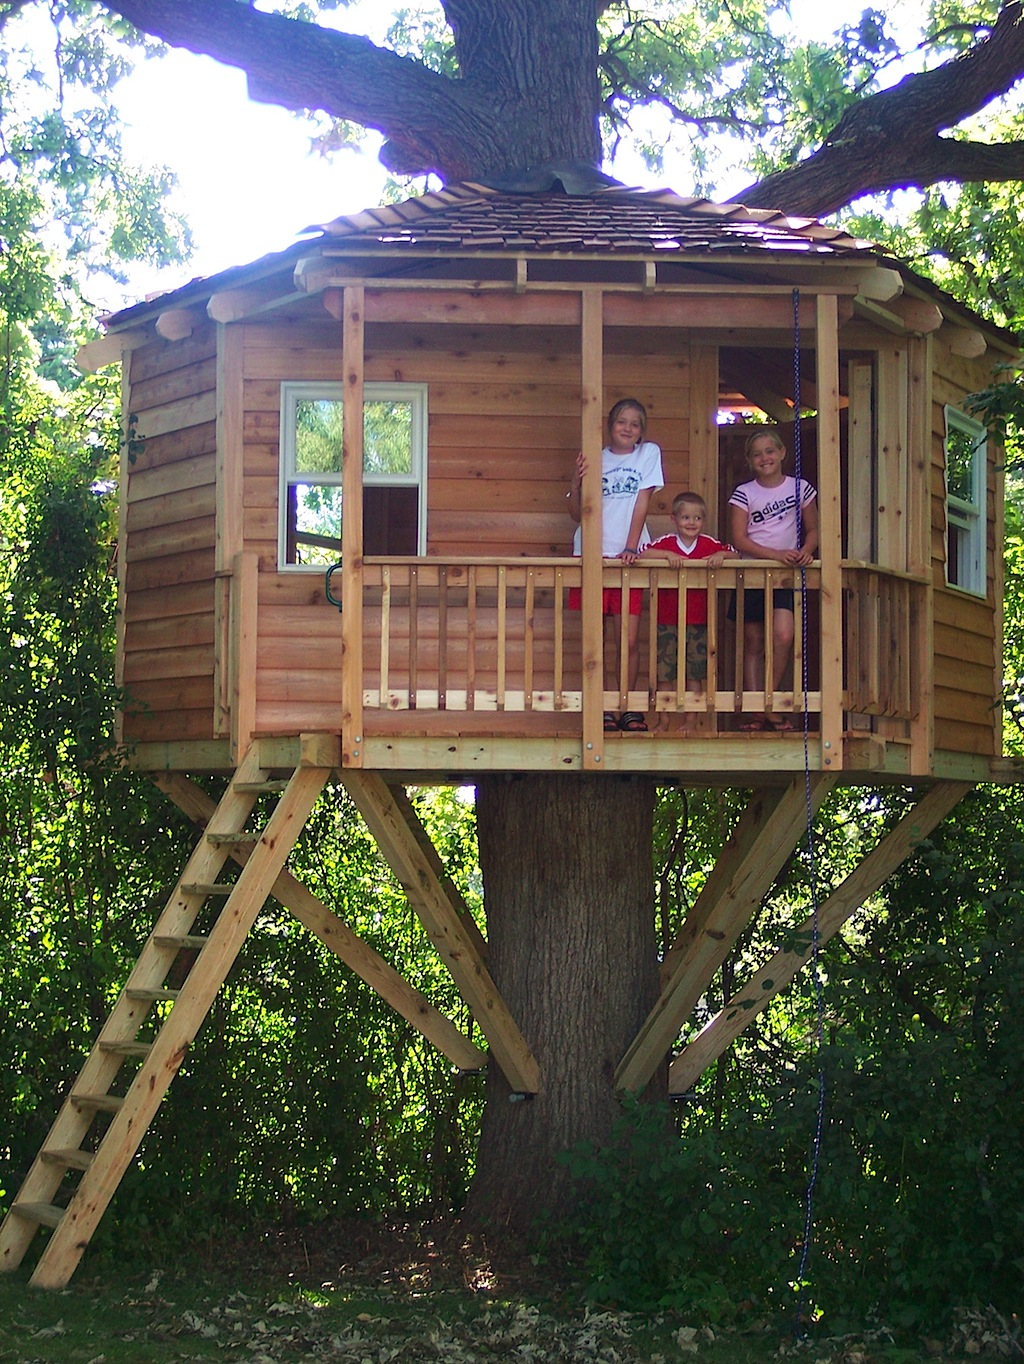 Corbin 39 s treehouse treehouses for Tree playhouse plans